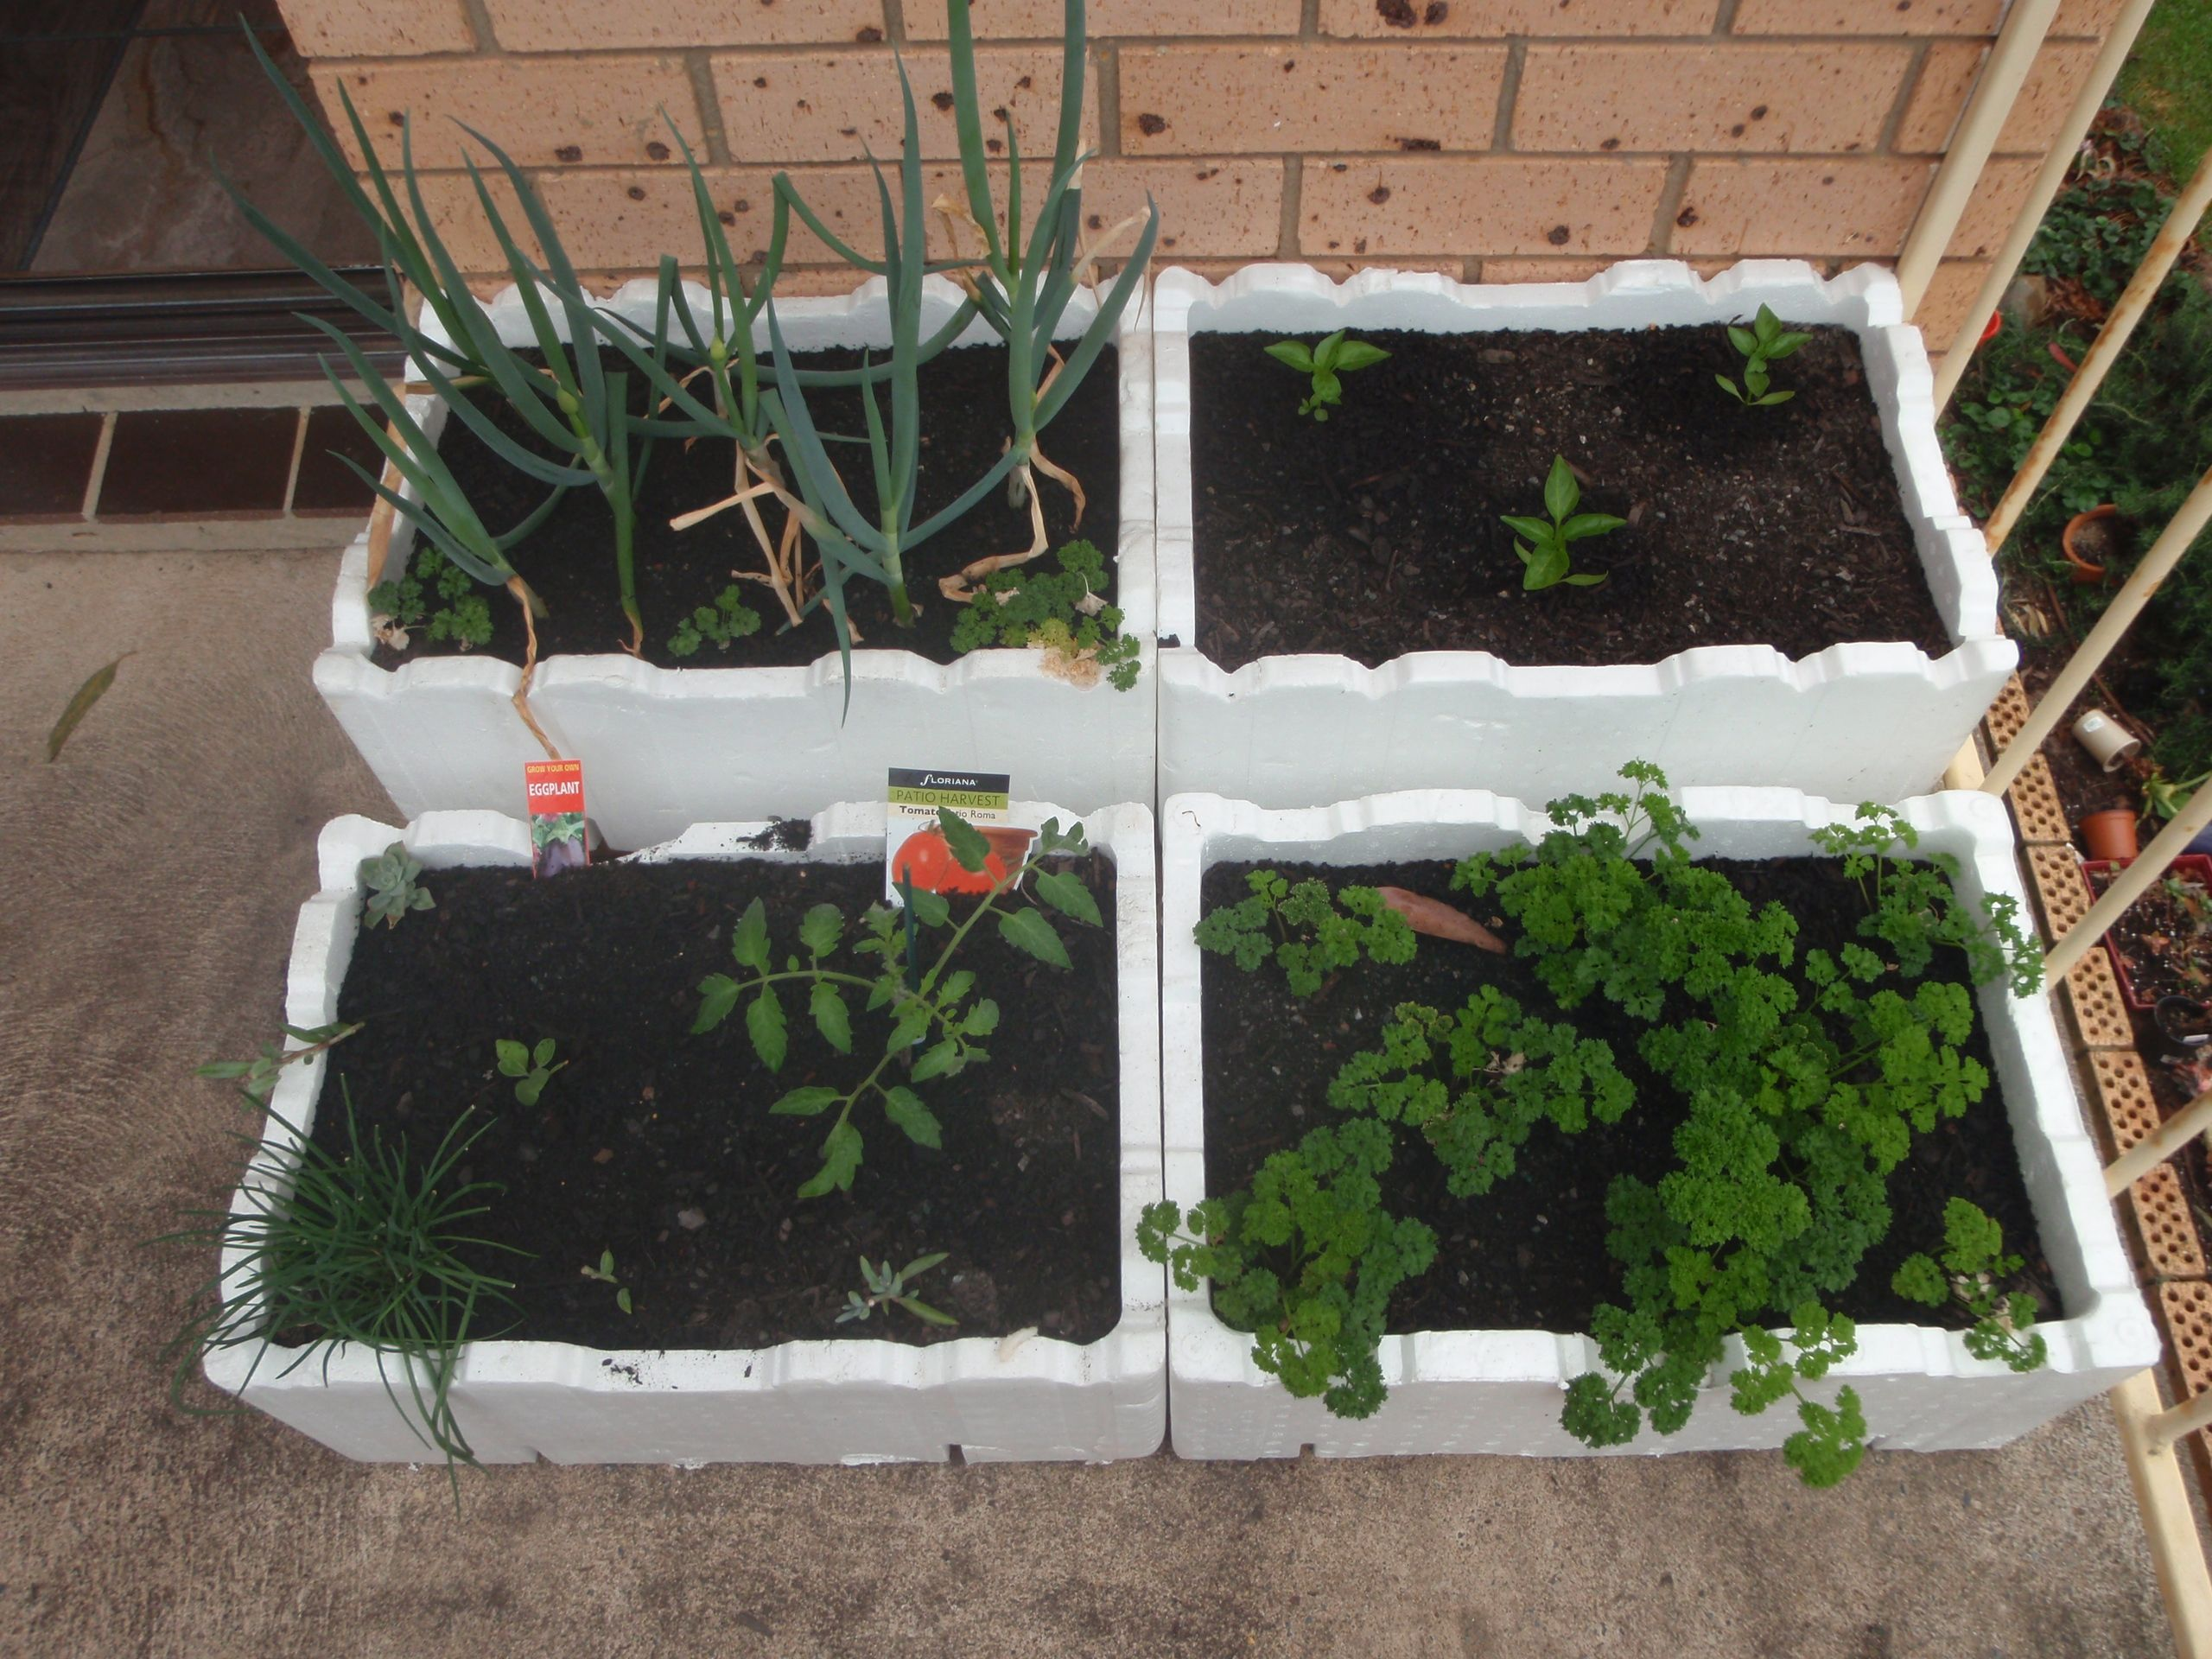 Recycling Balcony Veggies And Herbs In Recycled Foam Fruit Boxes